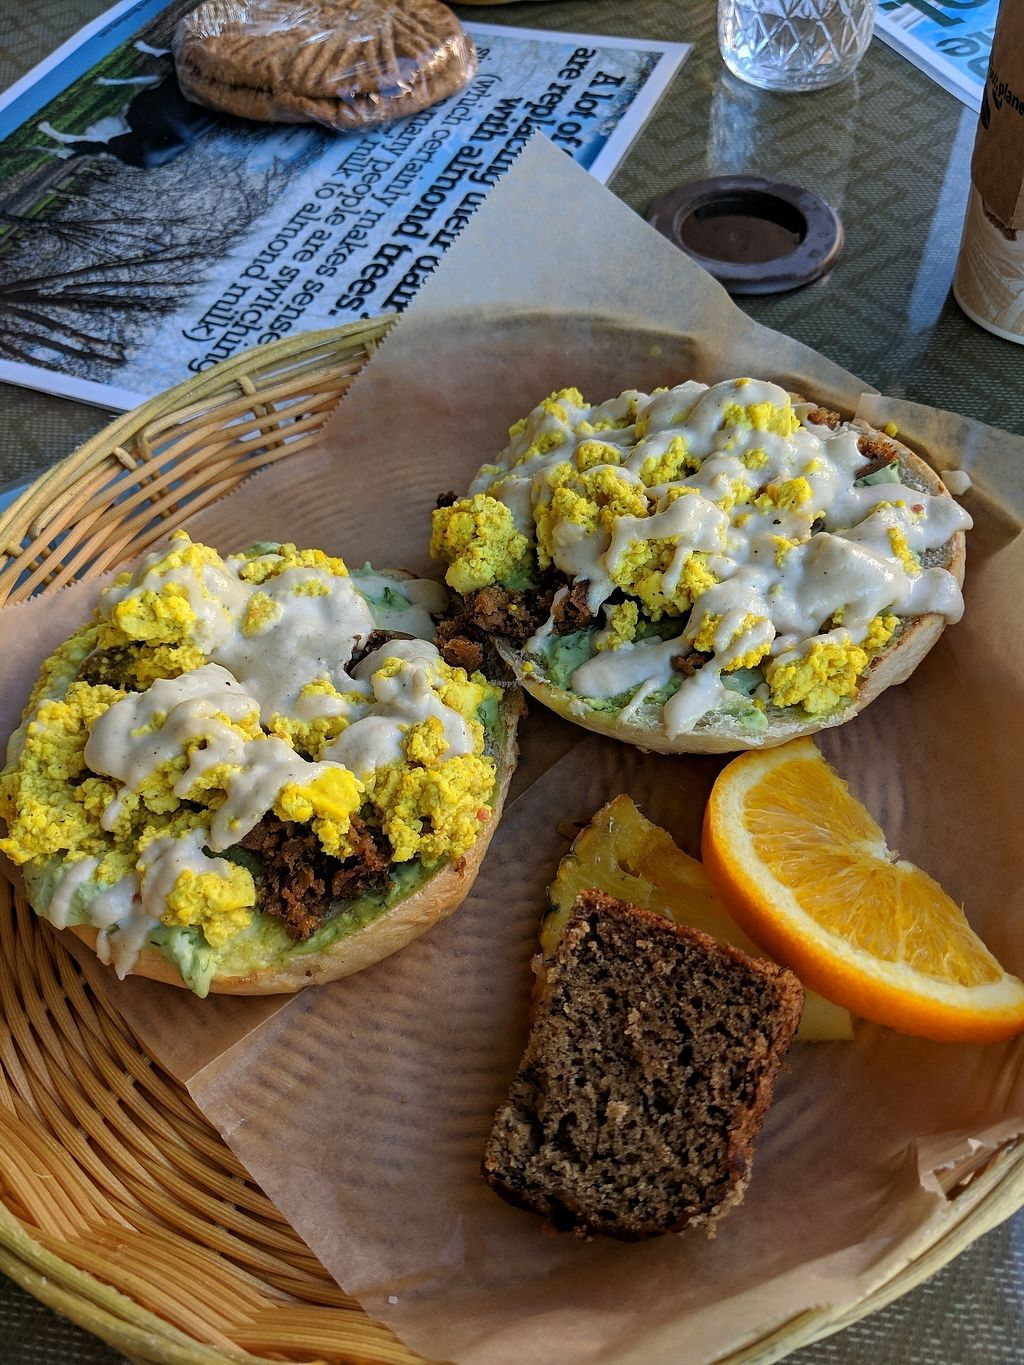 """Photo of Evolution Bakery and Cafe  by <a href=""""/members/profile/mrrfrost"""">mrrfrost</a> <br/>Buddha bagel scramble <br/> February 20, 2018  - <a href='/contact/abuse/image/43352/361838'>Report</a>"""